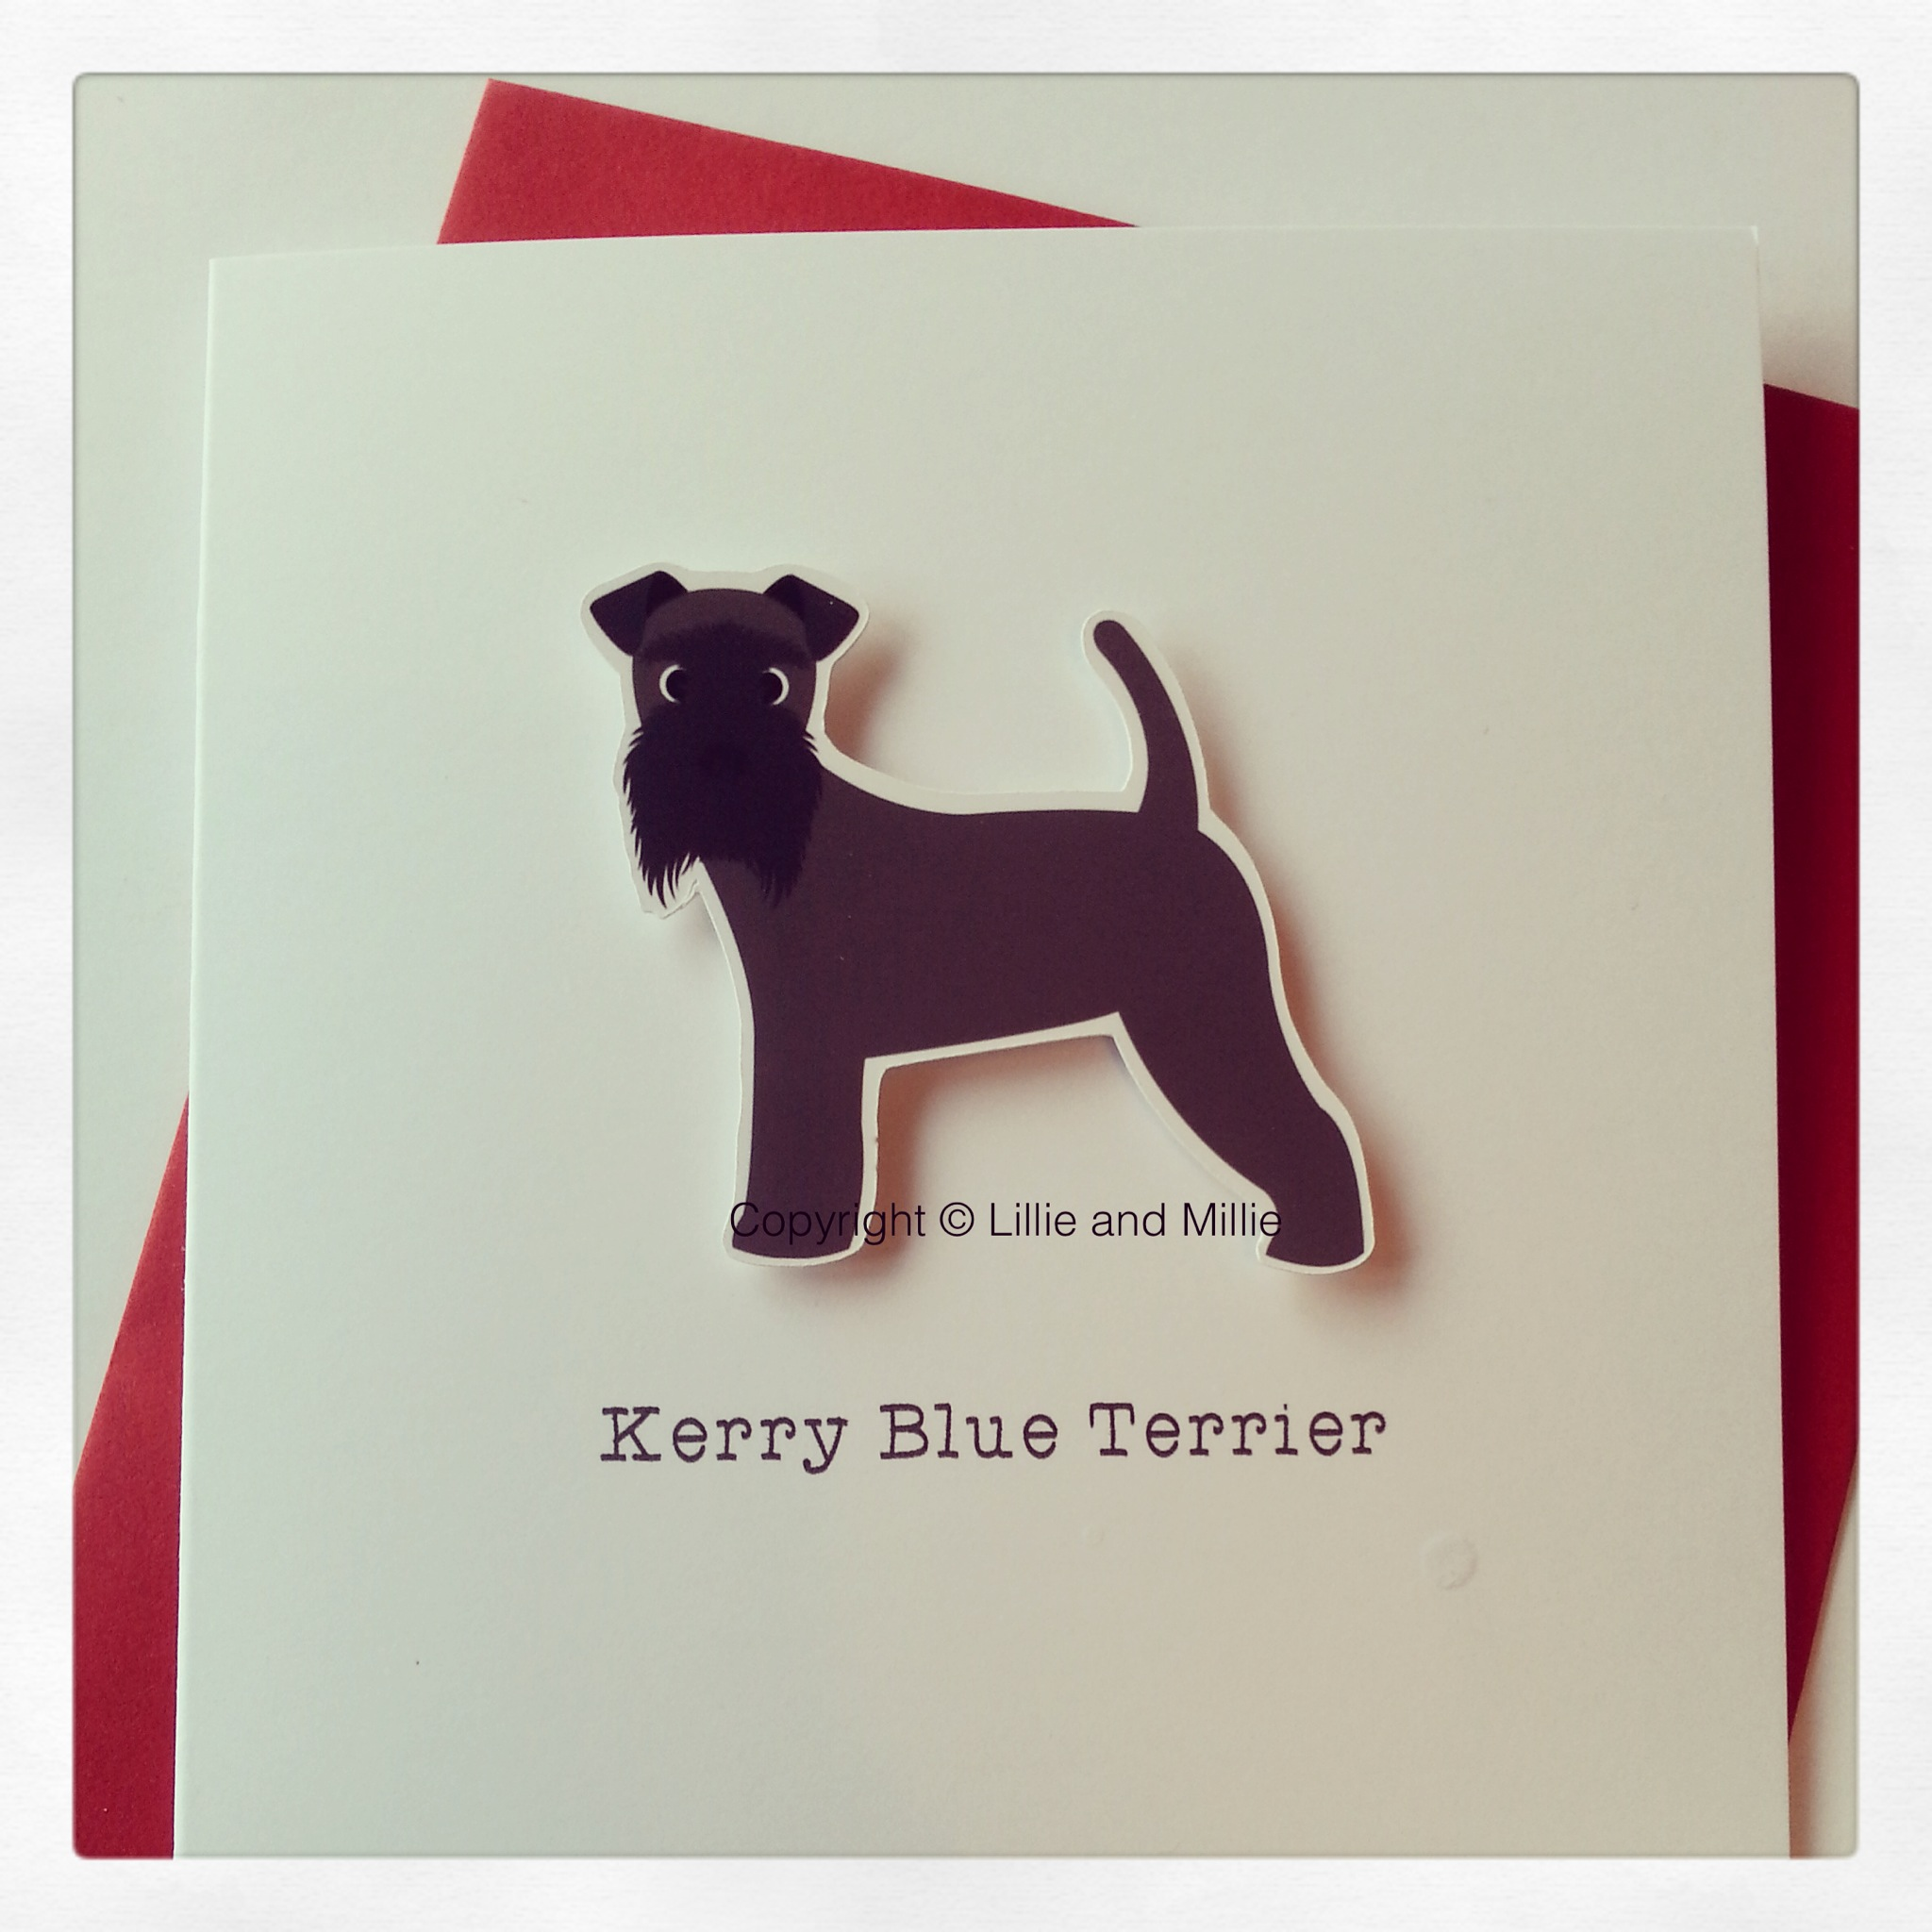 Cute and Cuddly Kerry Blue Terrier Card